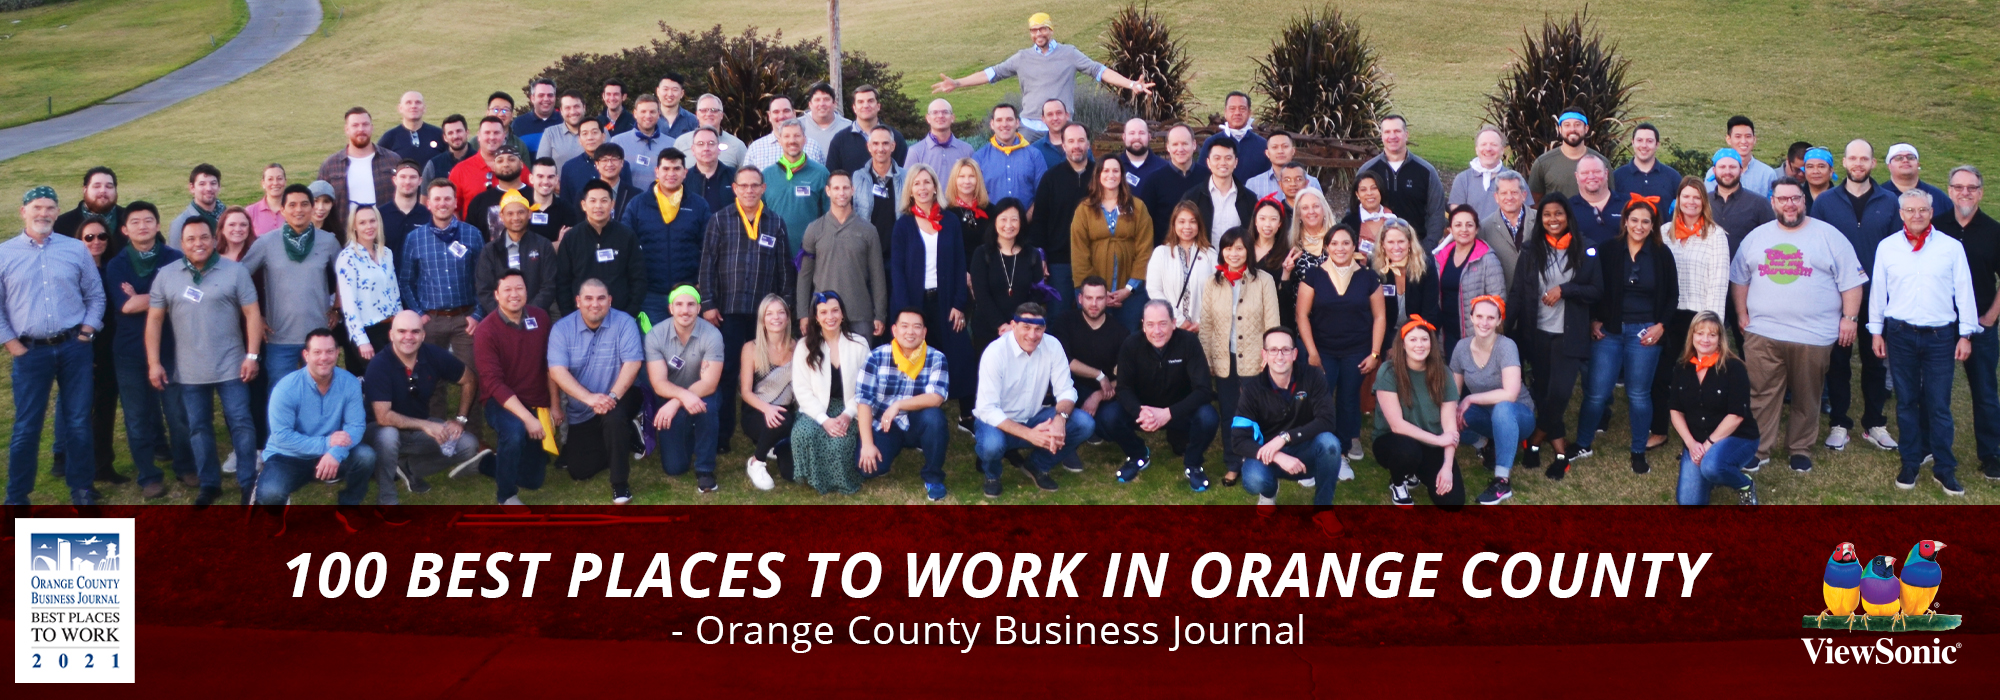 """ViewSonic Named Among """"Best Places to Work in Orange County"""" by OC Business Journal"""